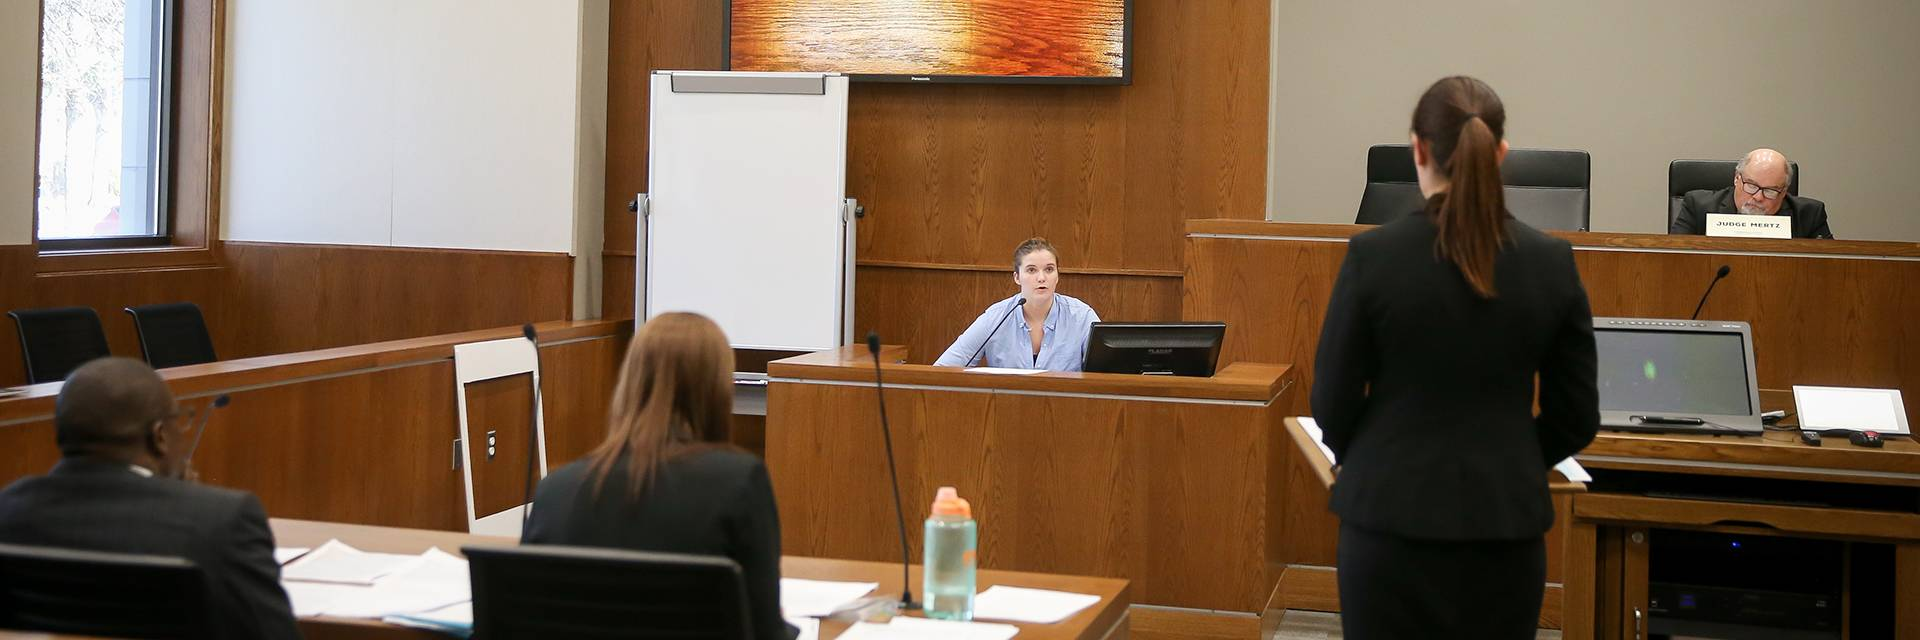 forensic psychology witness testifying during trial